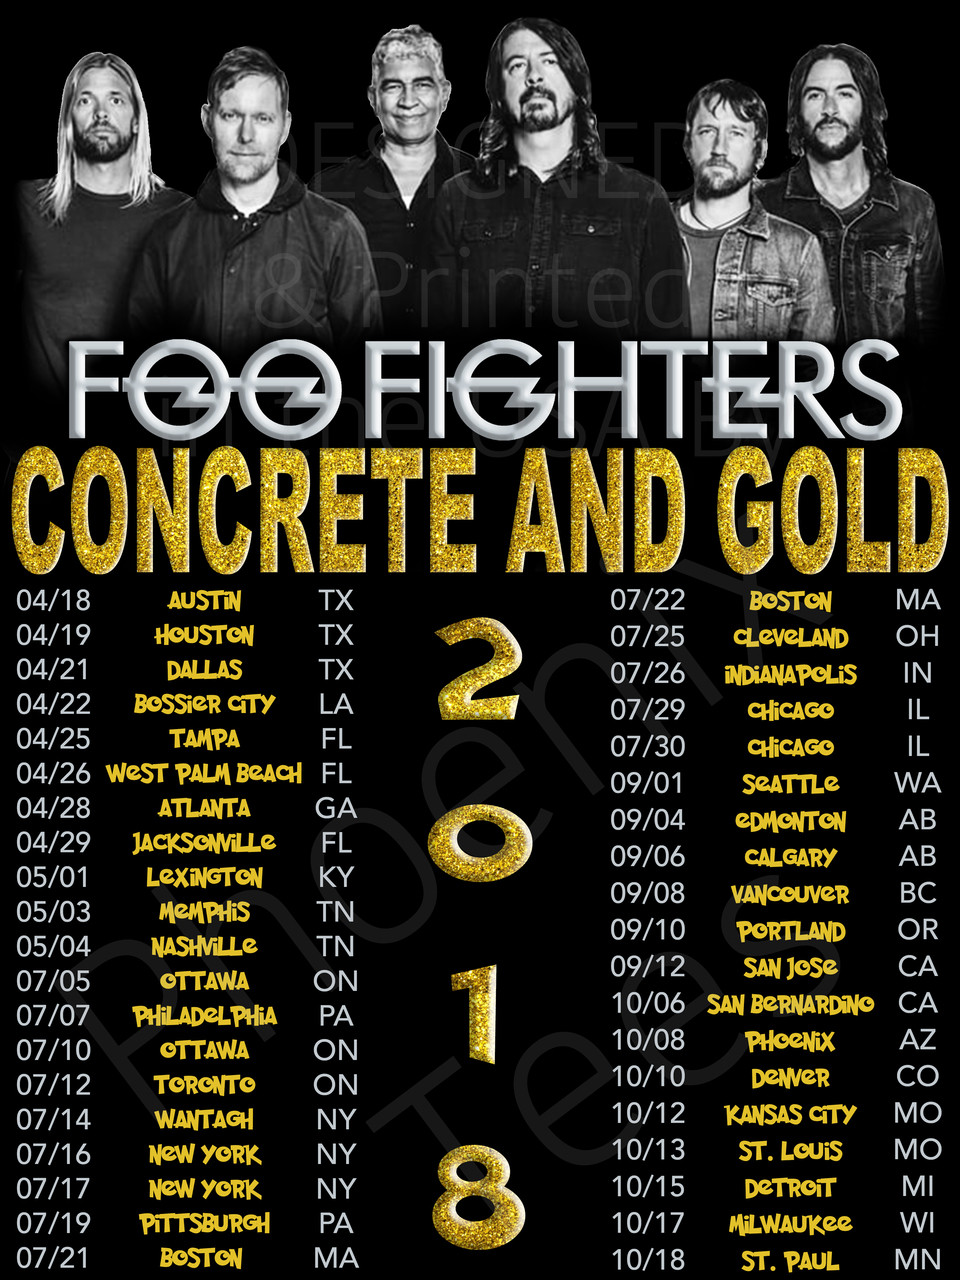 6920ba53 Foo Fighters 2018 Concrete and Gold Concert Tour t shirt - Phoenix Tees